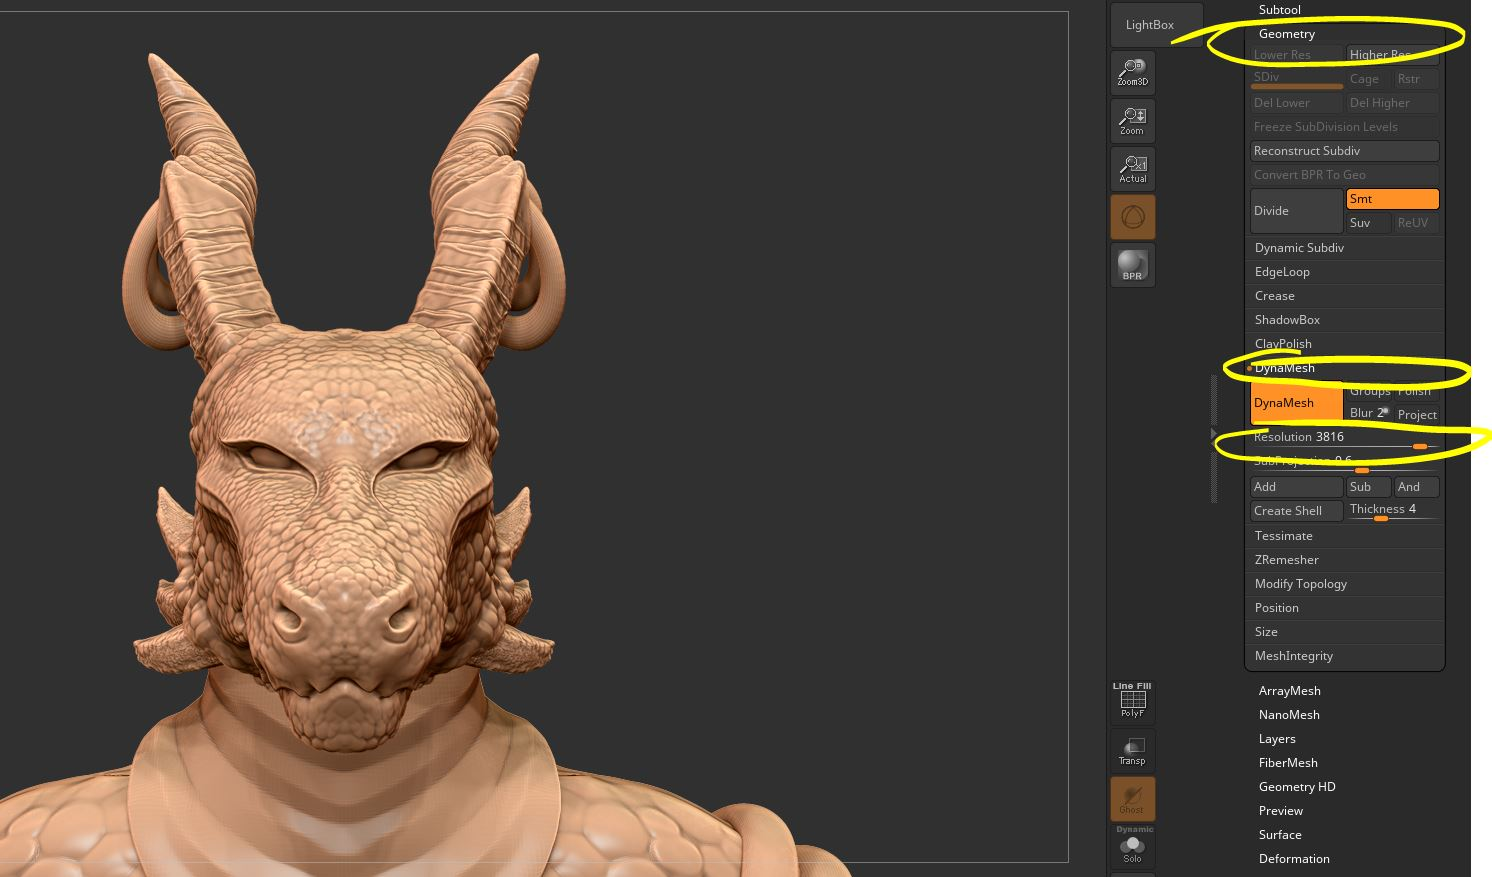 Detail! - As you can see the Dynamesh button is now orange meaning it is active. My resolution (bottom yellow circle), is also much higher!I will go over the strokes I use to detail models in the future. I wanted to go over polycount first though. Since without that you can't even begin to sculpt fine details!